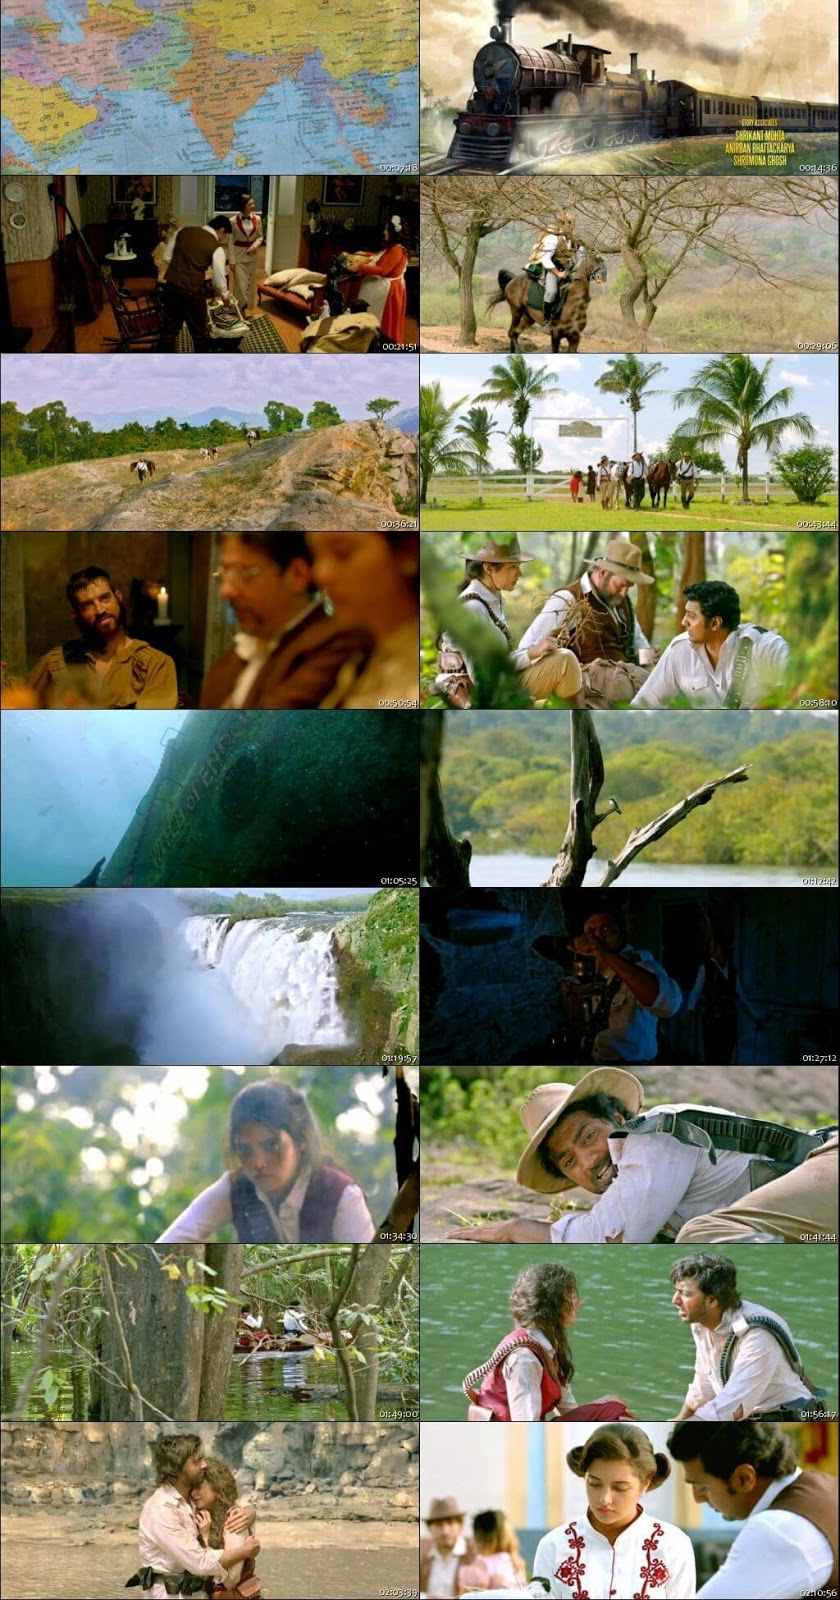 Amazon Adventure 2017 Hindi Dubbed 720p HDRip x264